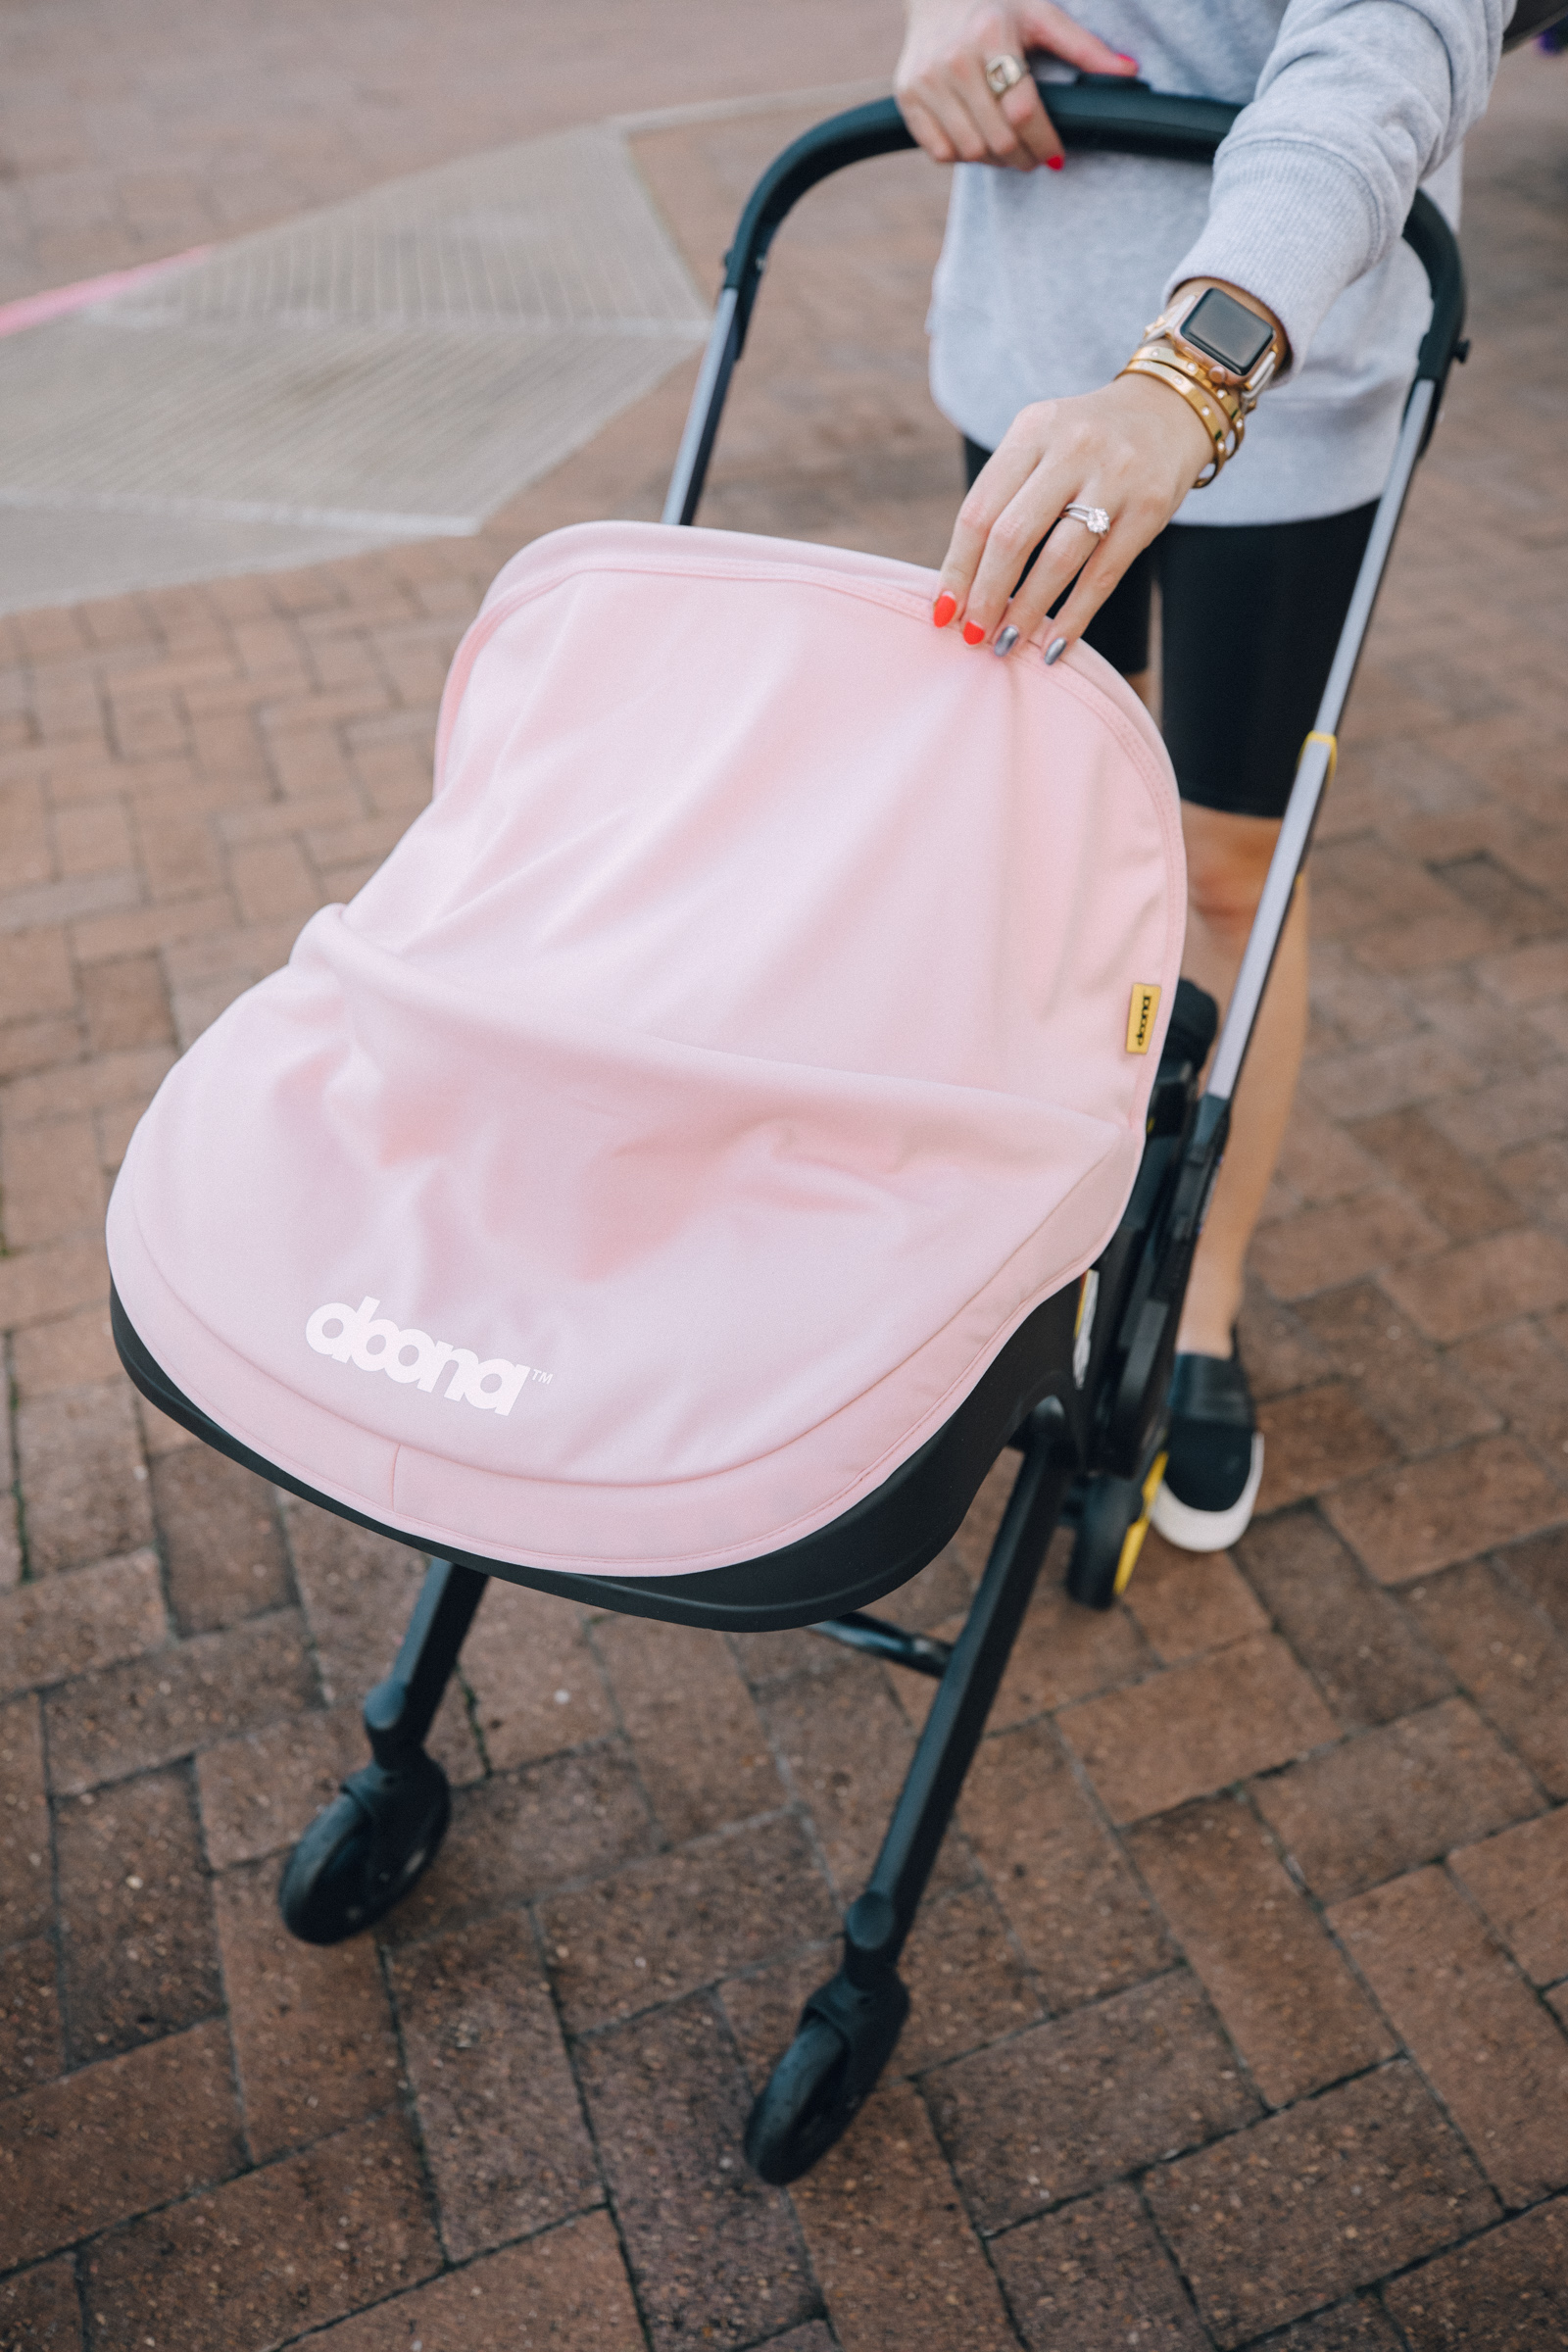 Houston lifestyle blogger Uptown with Elly Brown shares her Doona Stroller Review, and if it's really worth the $$$.